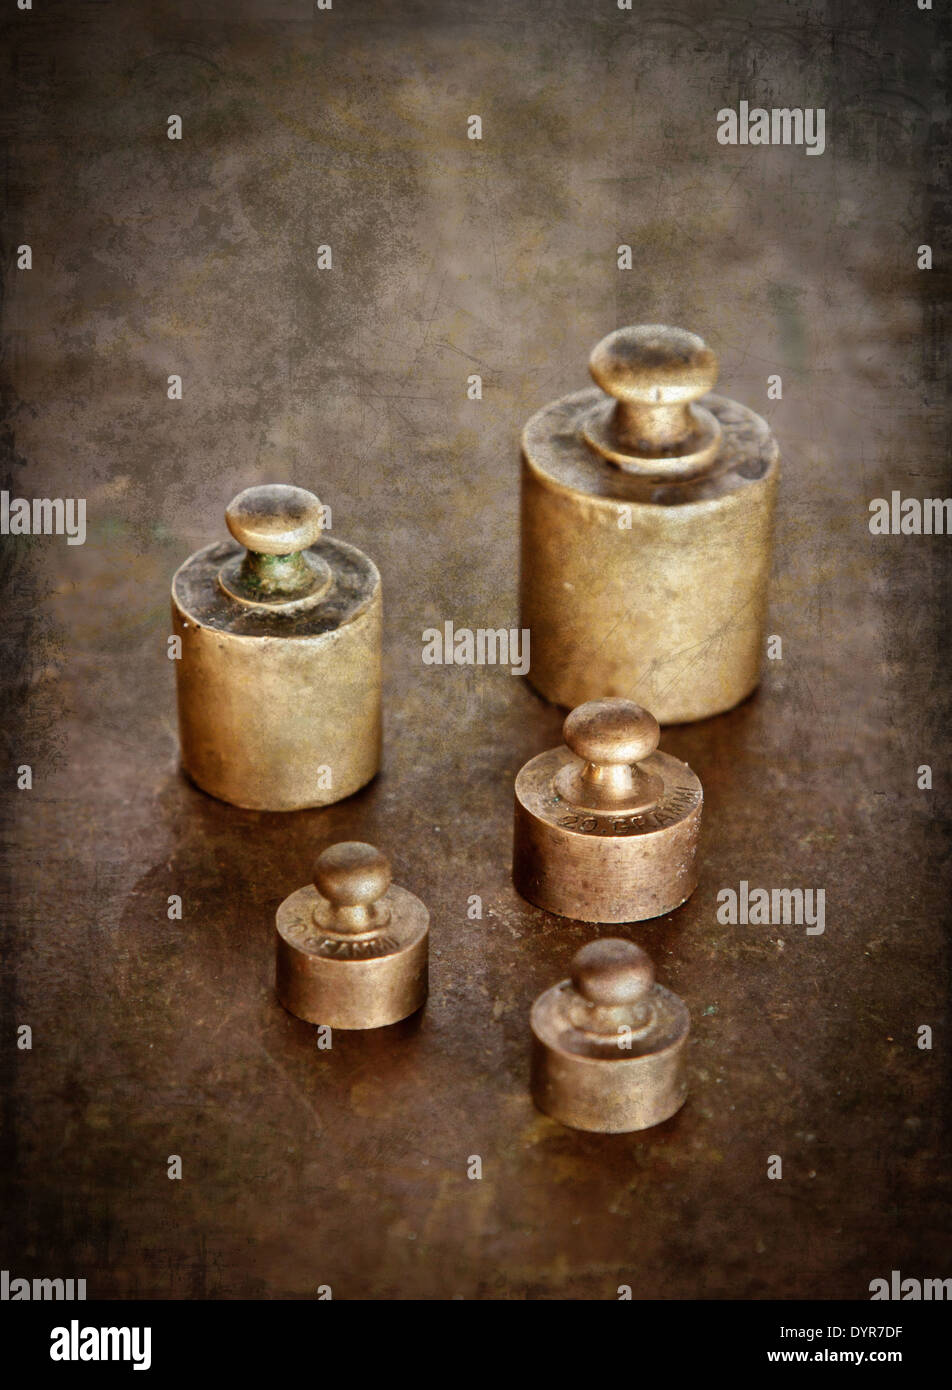 Vintage brass weights. Distressed texture for a retro feel. - Stock Image